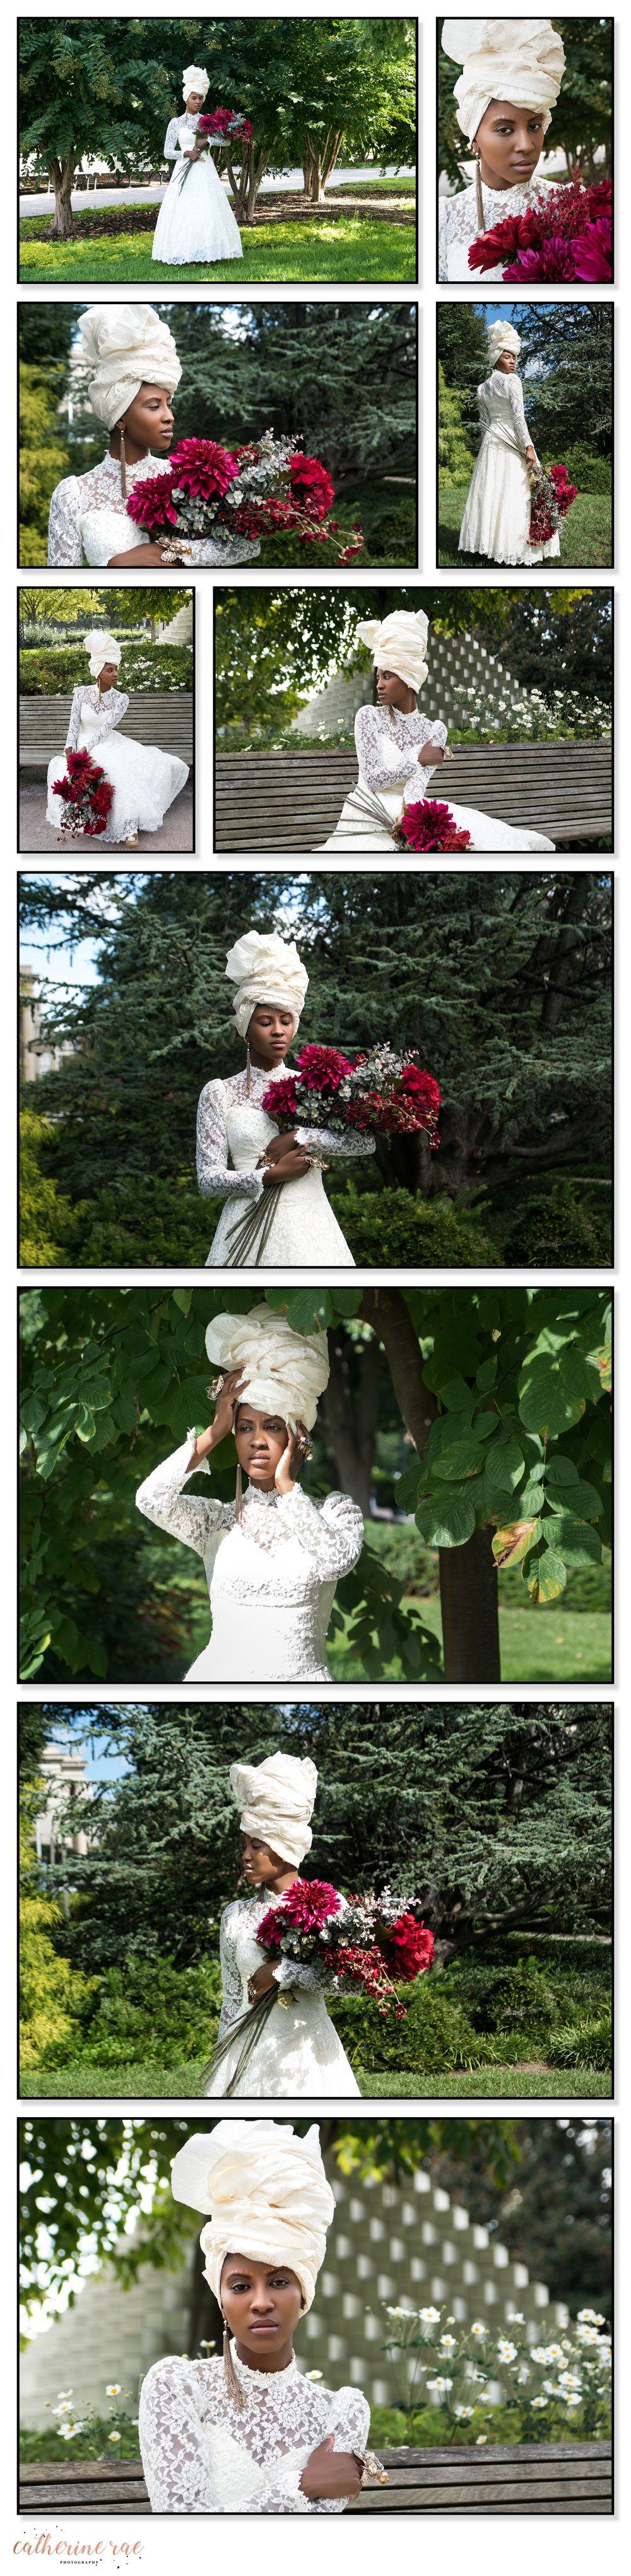 the_working_beauty-thrift-bridal-african-editorial.jpg